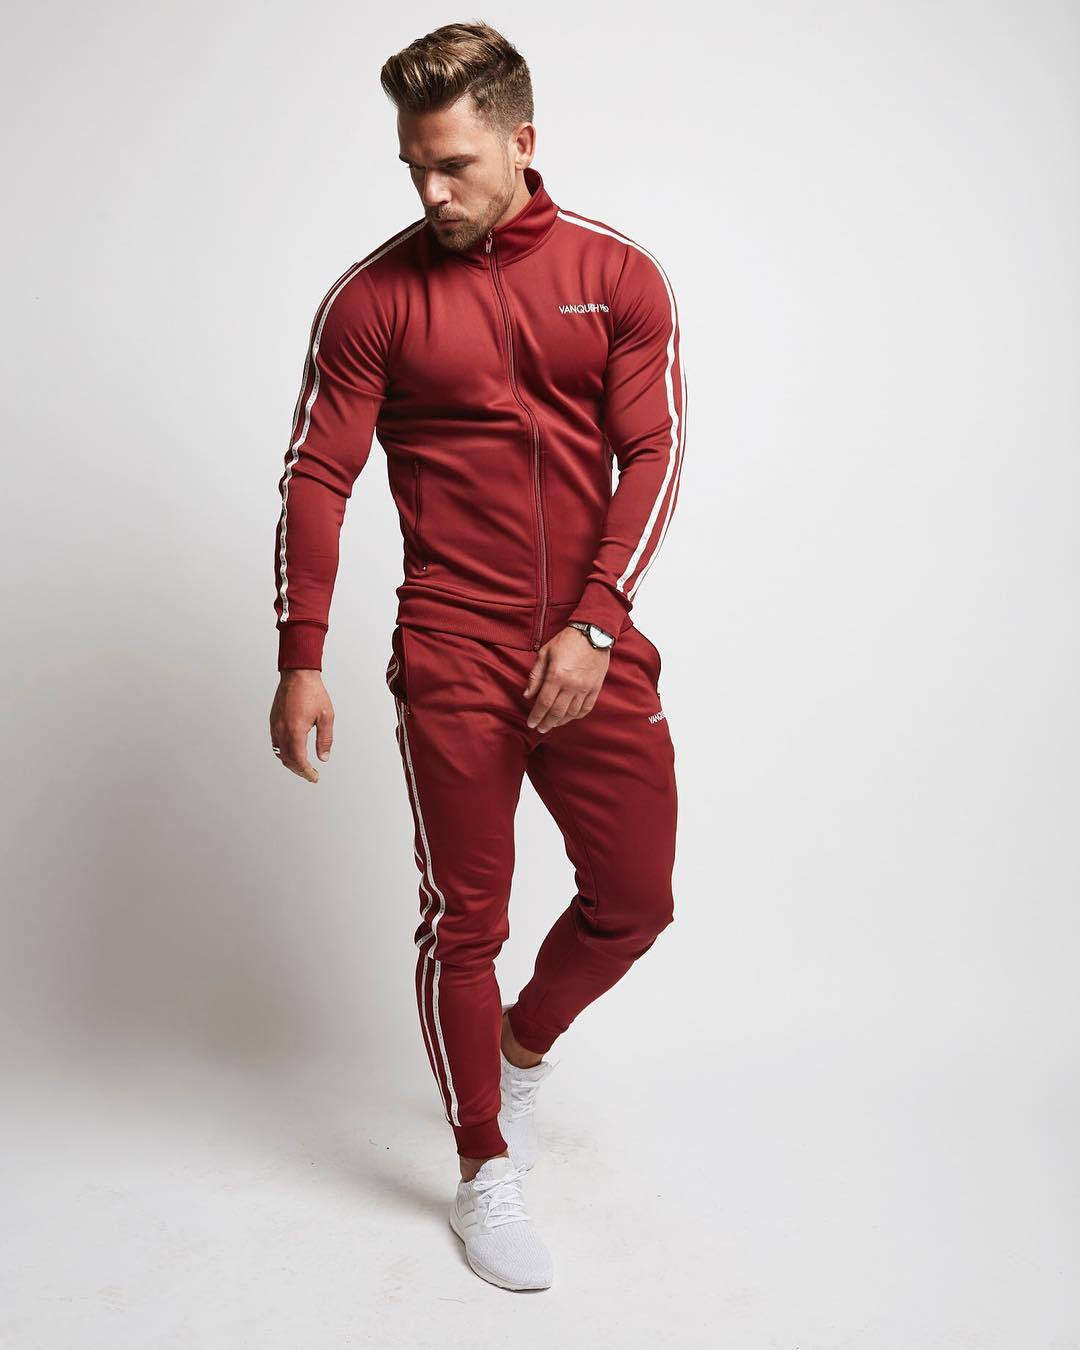 Autumn Winter Men Sport Suit Stripe Printed Zip Up Jacket Sweatshirt pant Casual Running Jogger Workout Fitness Set Sportswear in Running Sets from Sports Entertainment